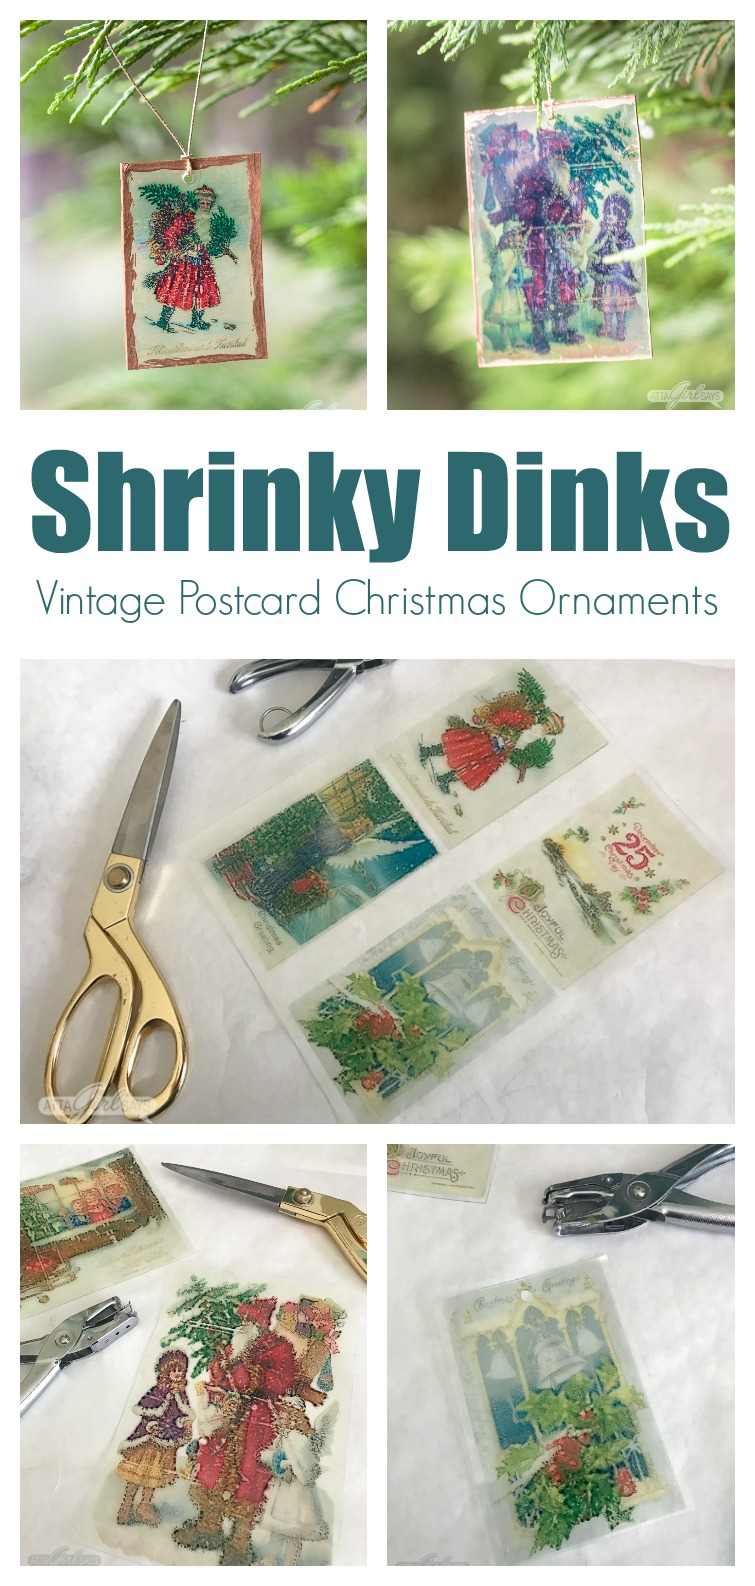 collage photo showing two vintage postcard Christmas ornaments hanging on a tree and images printed on Shrinky Dinks paper